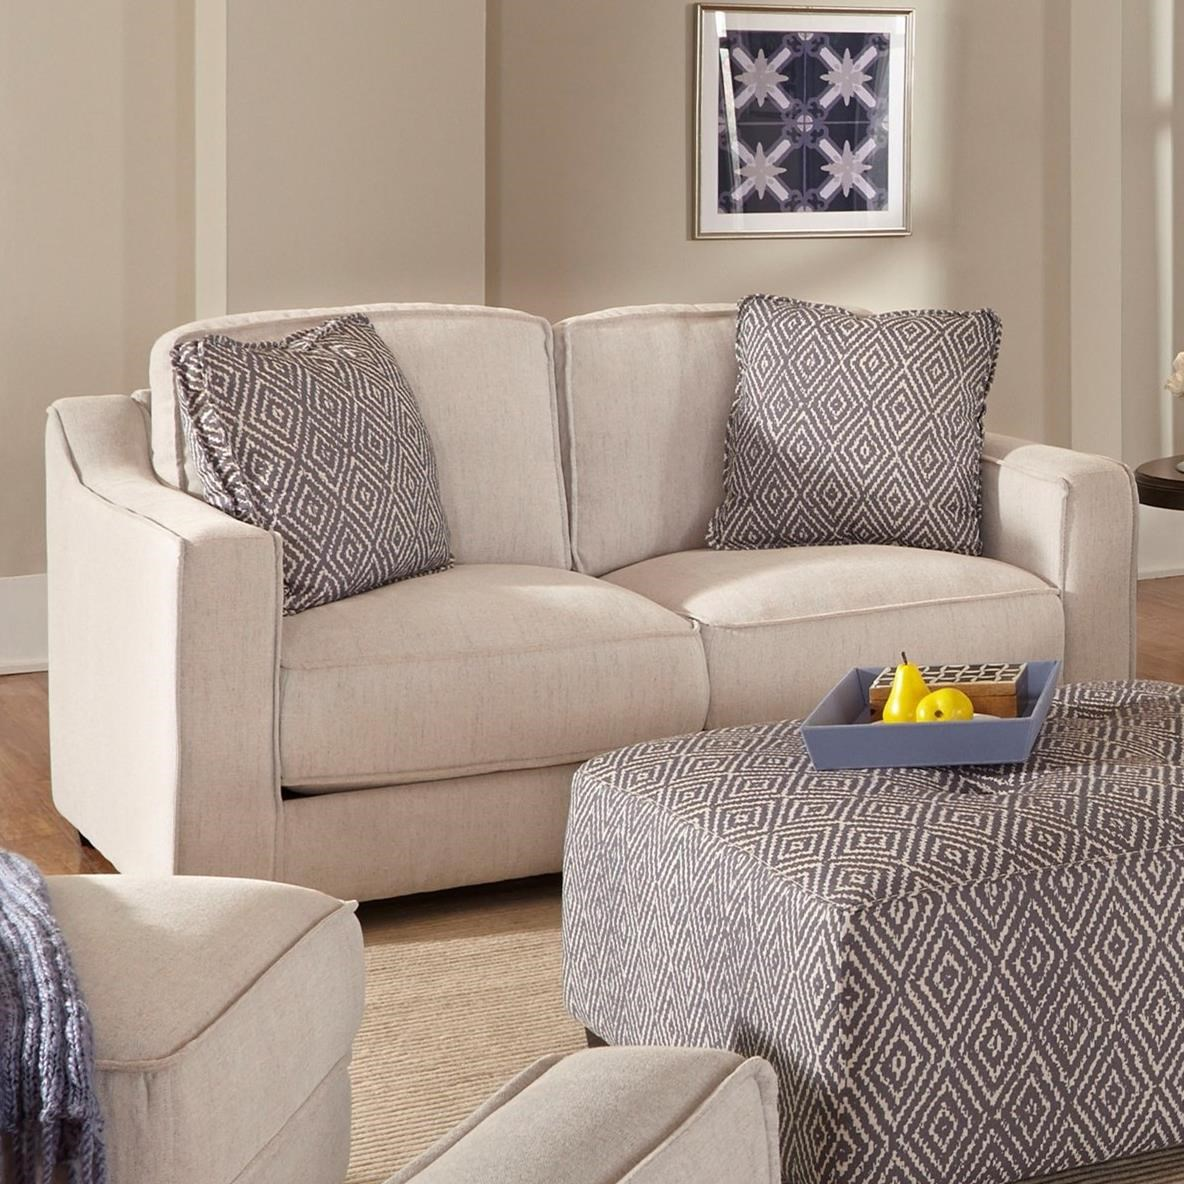 Landon Loveseat by Franklin at Furniture Superstore - Rochester, MN